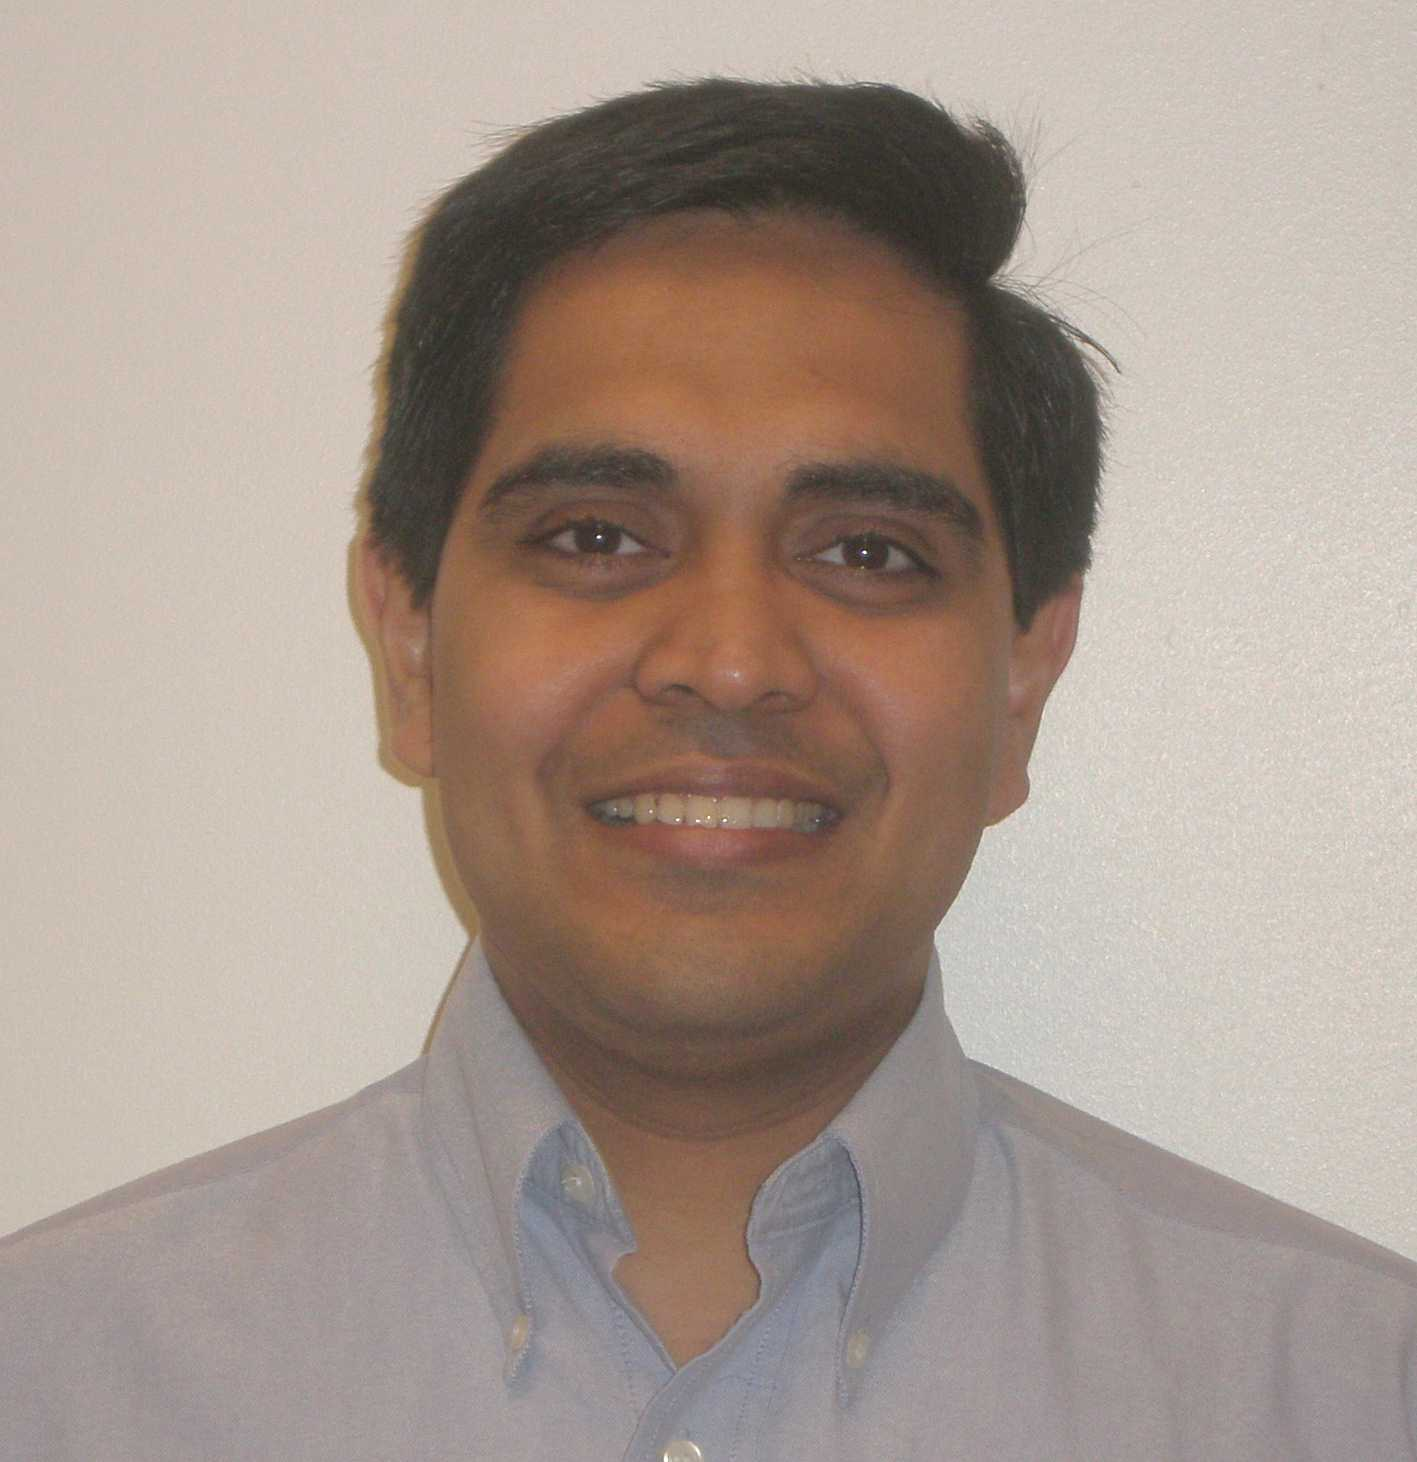 Photo of Sunil Karhadkar, M.D